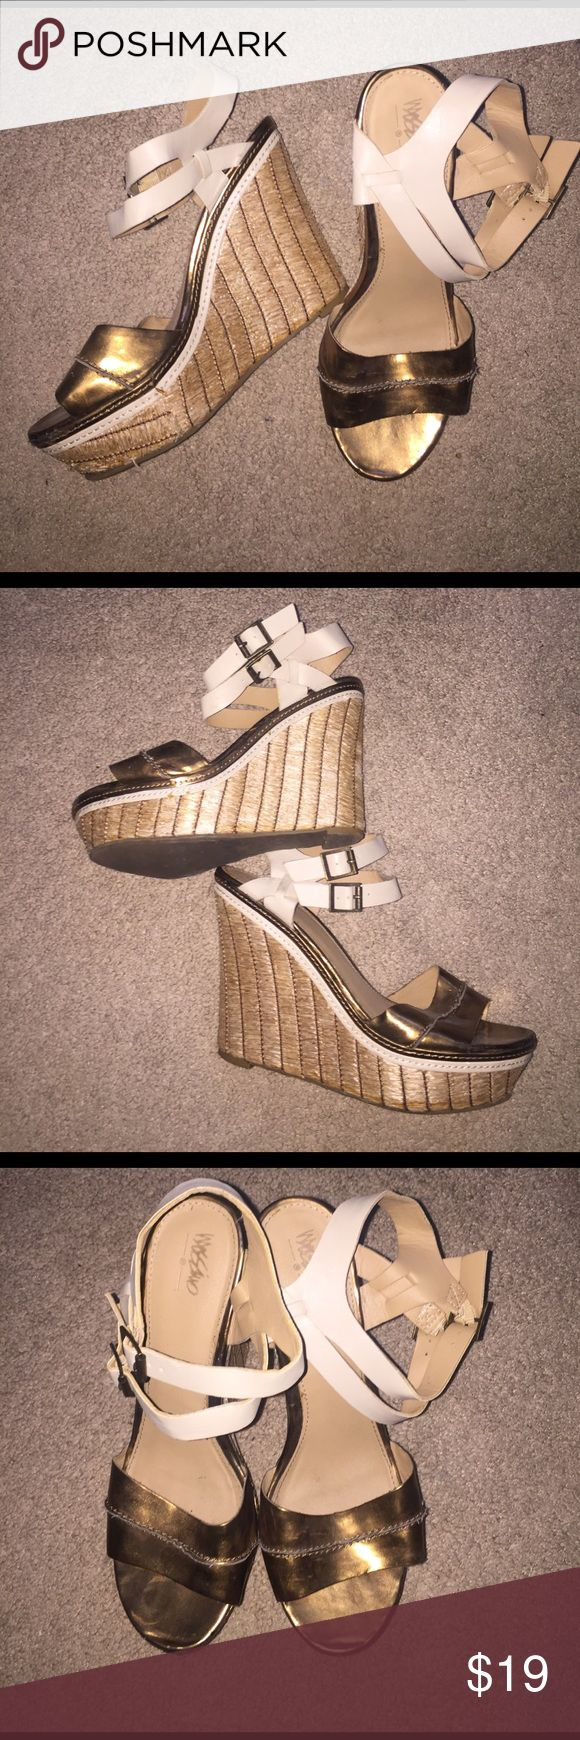 Fun Copper and Beige Wedges with Straw Heel Fun Copper and Beige Wedges with Straw Heel. Used but in good condition. Size 10. Heel is approximately 6 inches. Very comfortable despite heel height!!  Some signs of wear on heels and straw. Mossimo Supply Co Shoes Wedges